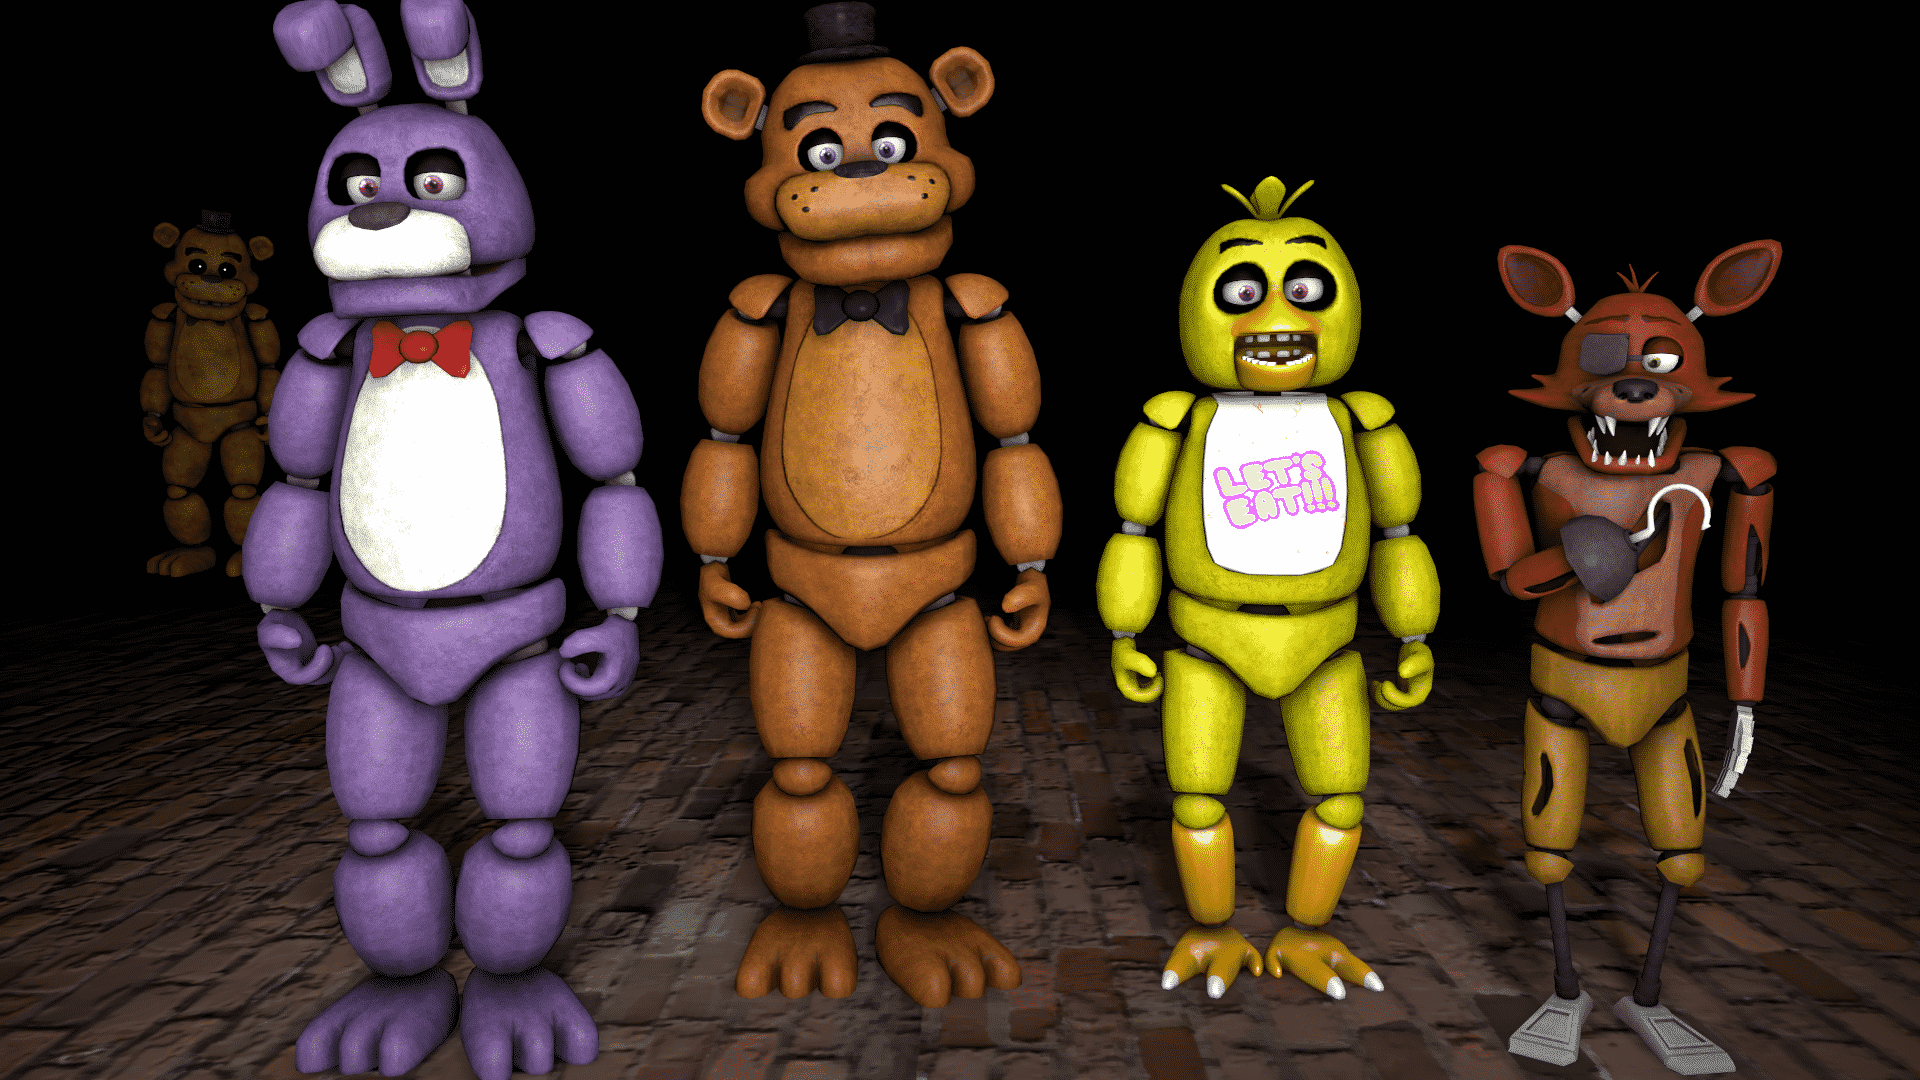 horor Five Nights at Freddy's